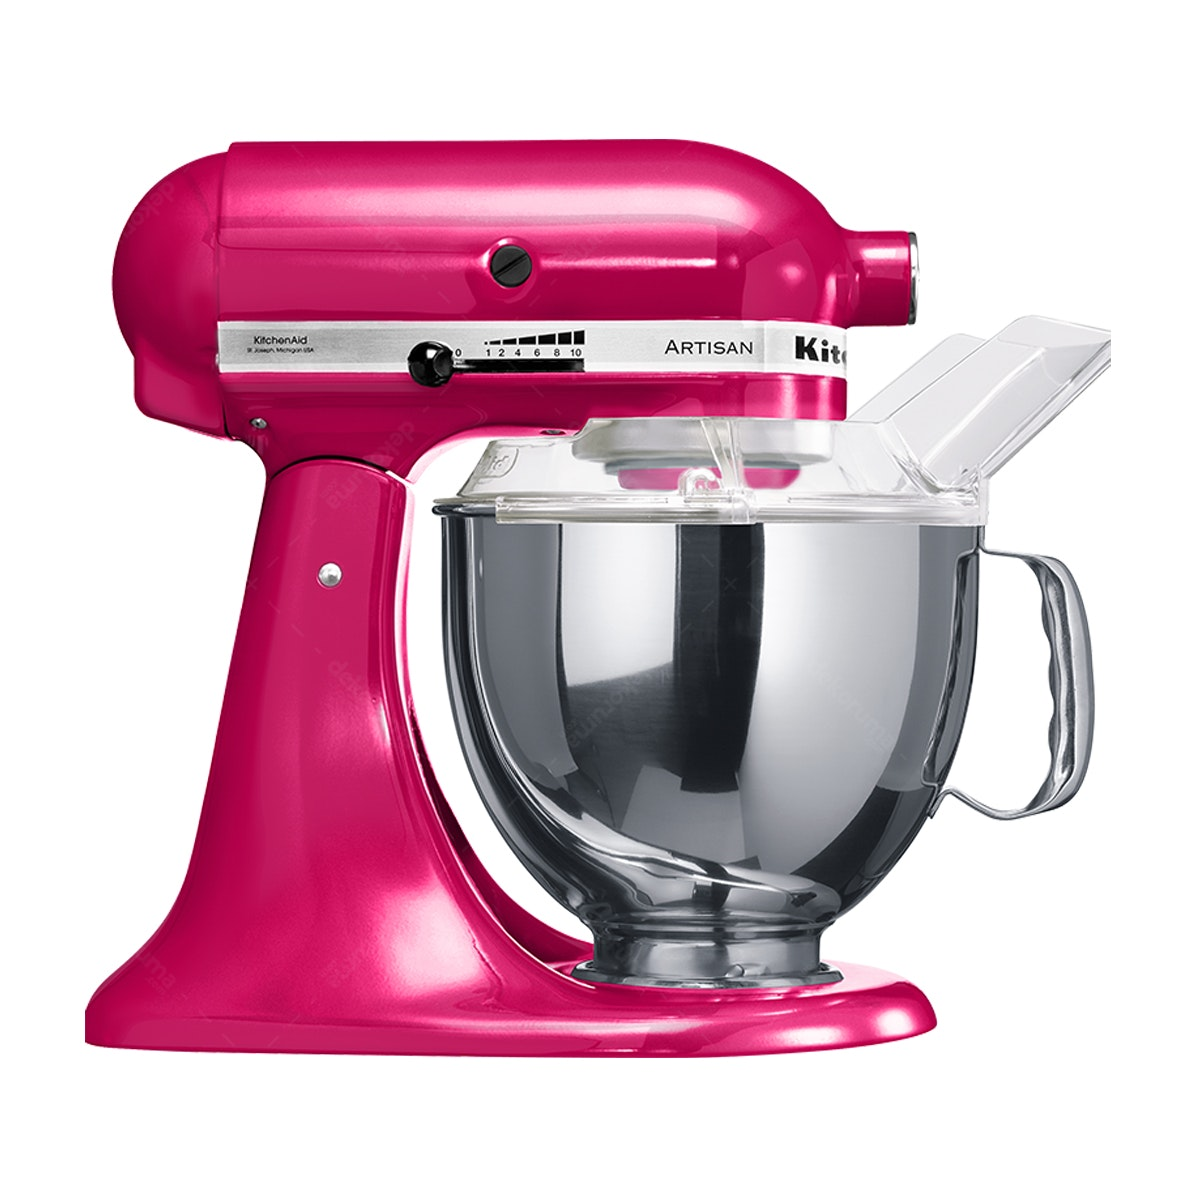 KitchenAid Artisan Series 4.8 L Stand Mixer (Raspberry Ice)